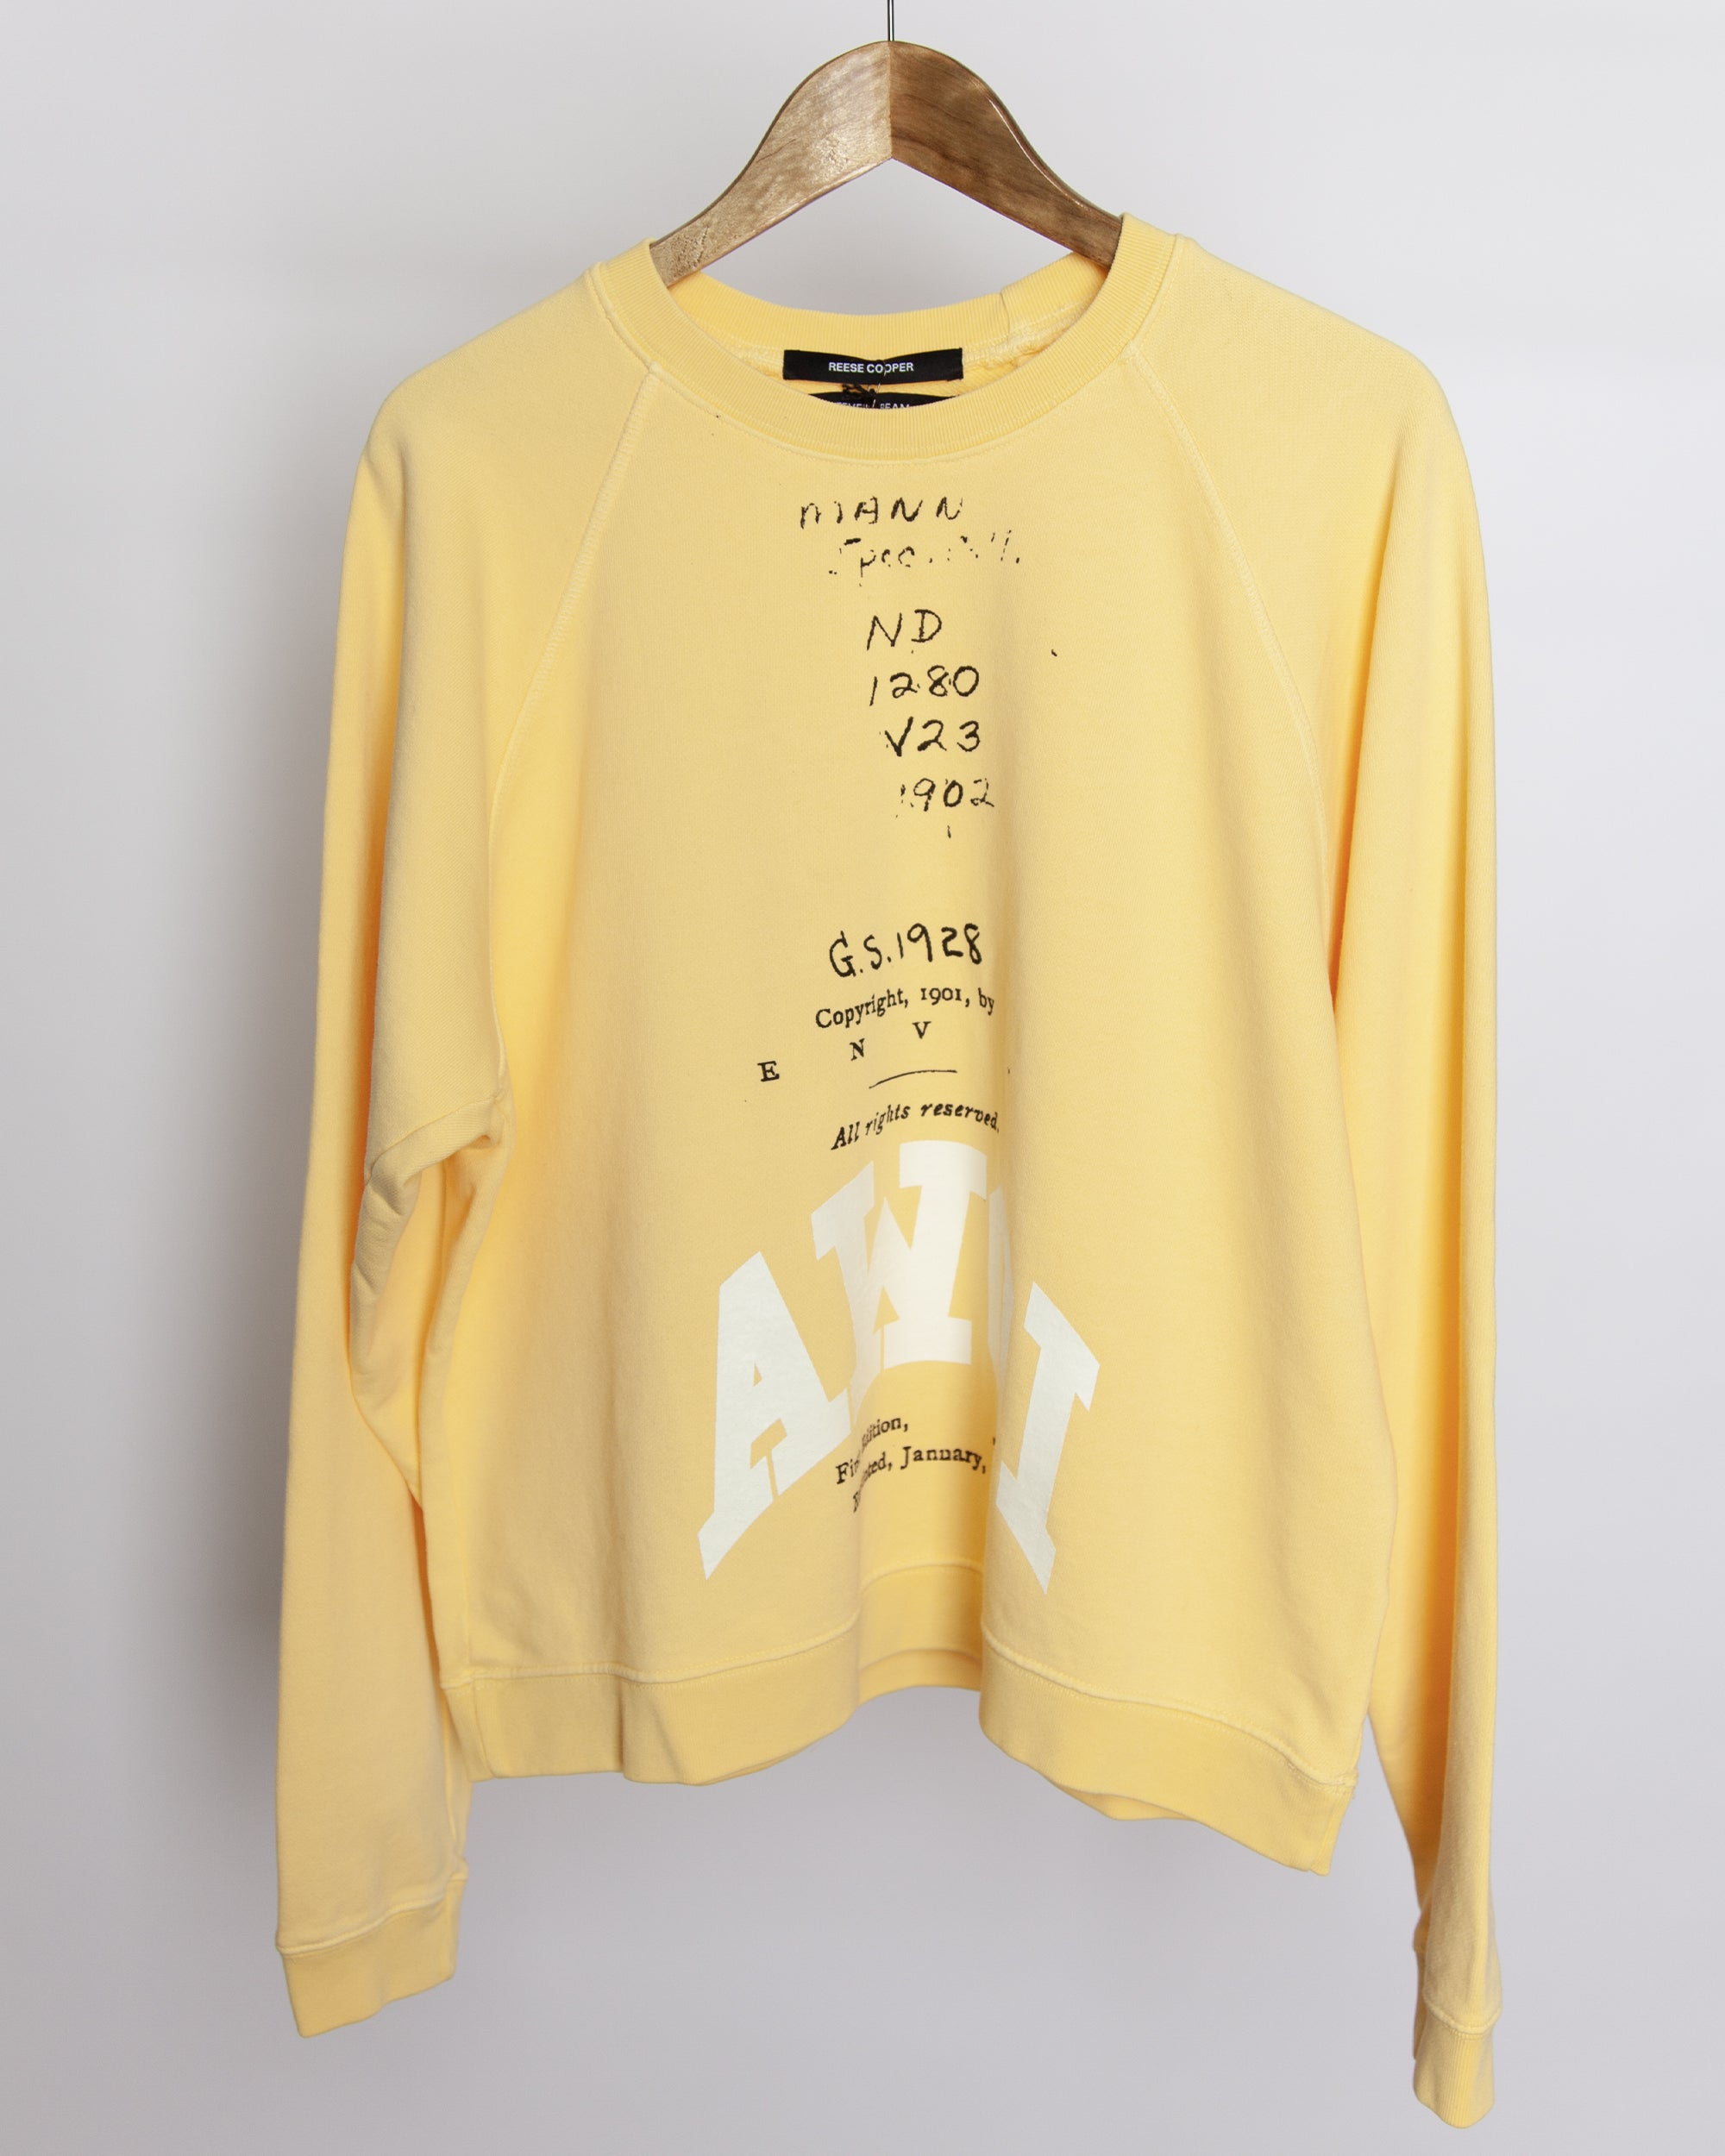 Fever Dream - AWOI Sweatshirt in Yellow